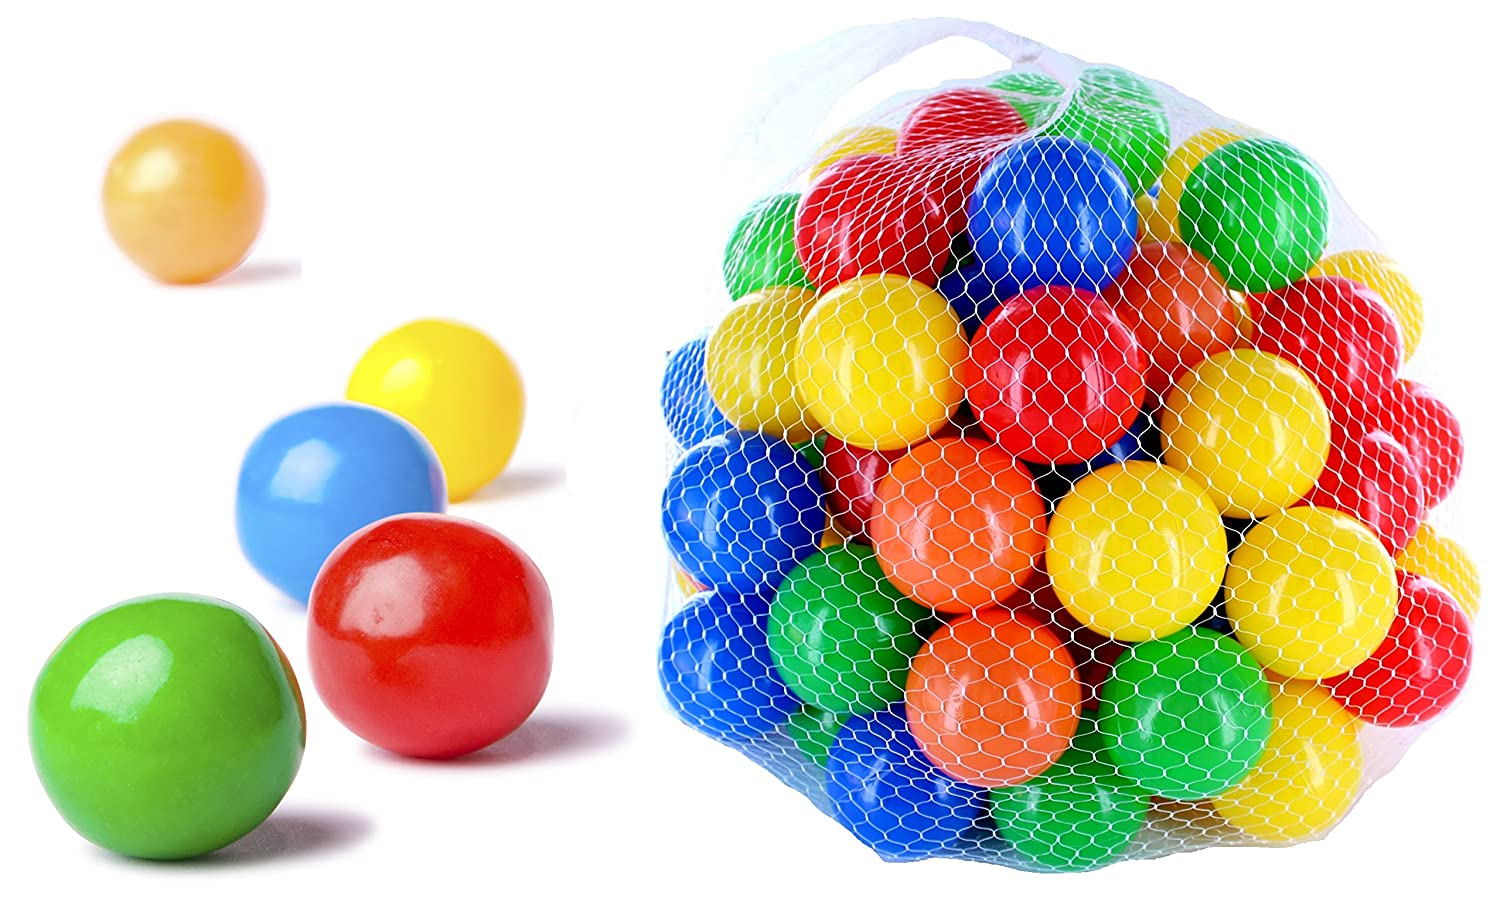 250 pieces red balls for children, babies and animals, 55mm diameter, Pit s children kids plastic play pool multi coloured toy soft mixed plastic certificate CM3